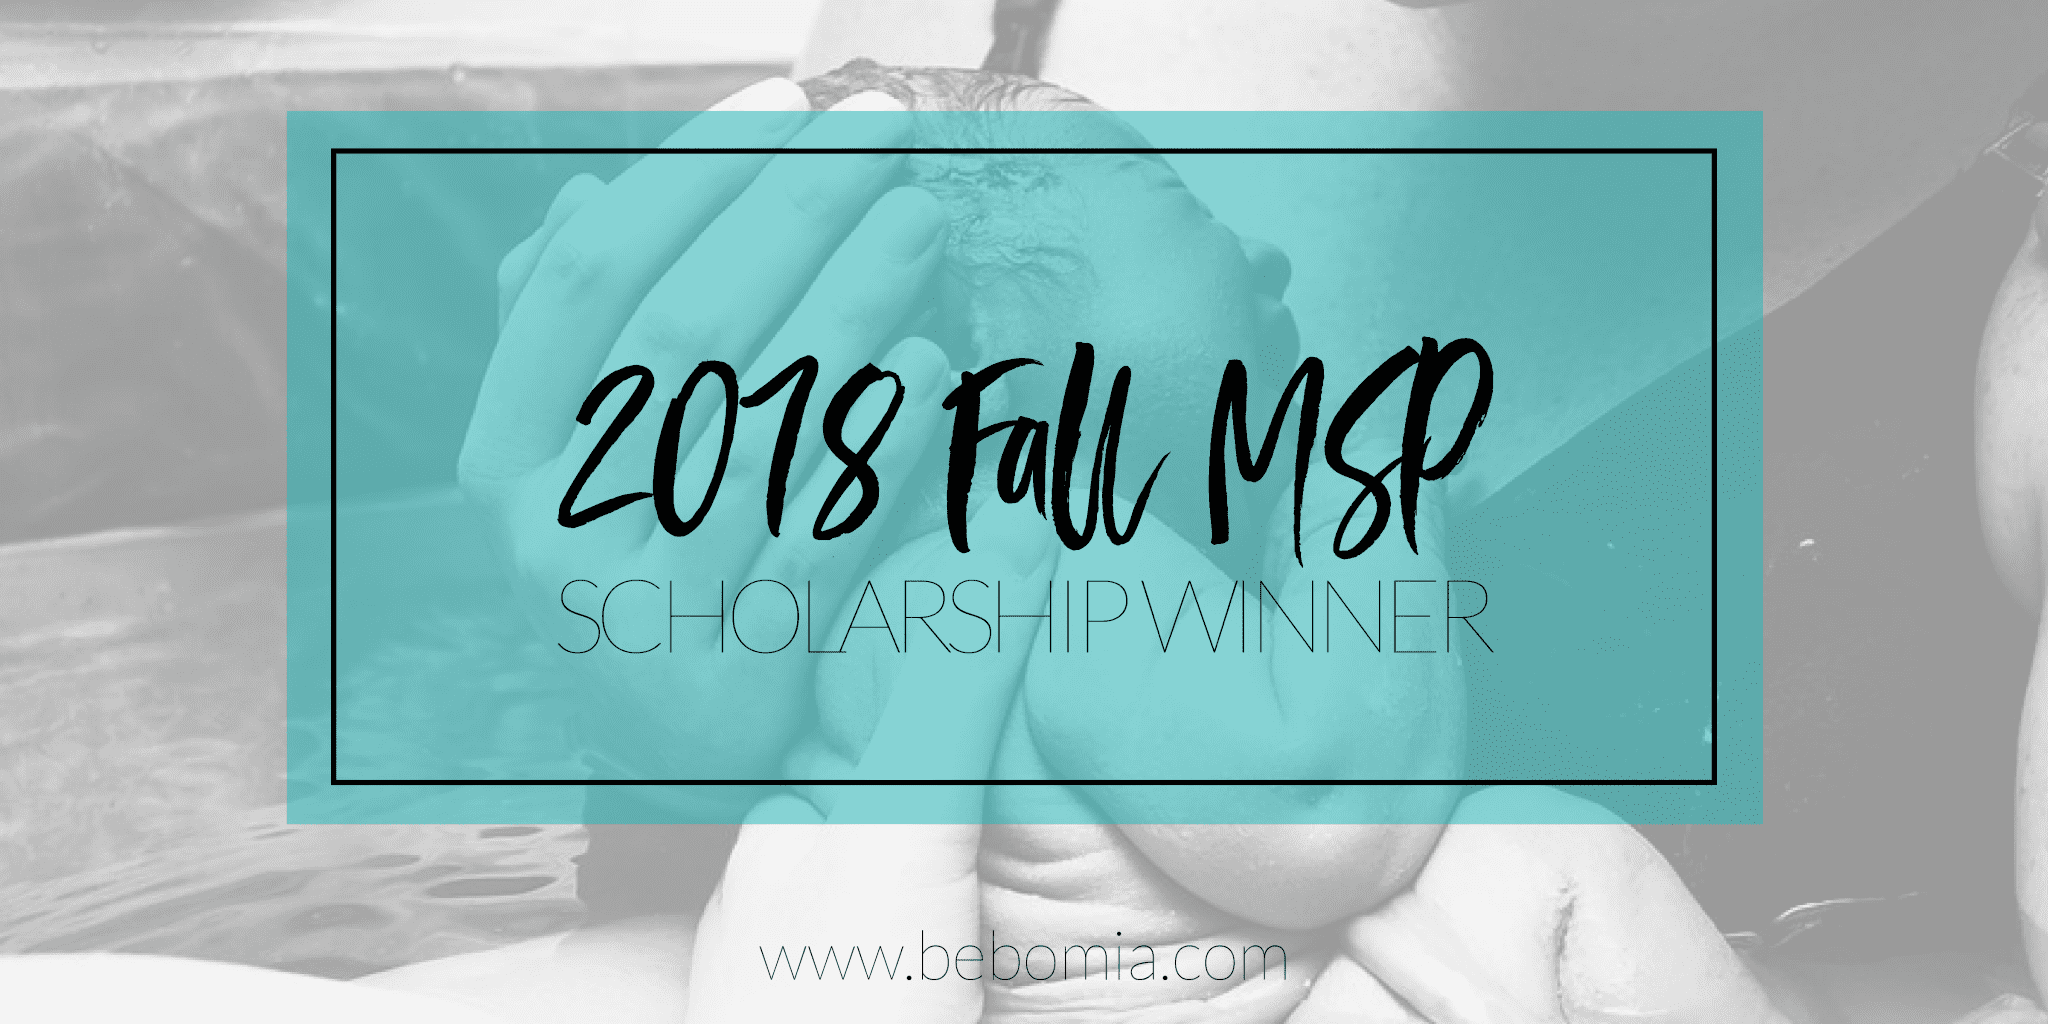 2018 Fall MSP Scholarship Winner